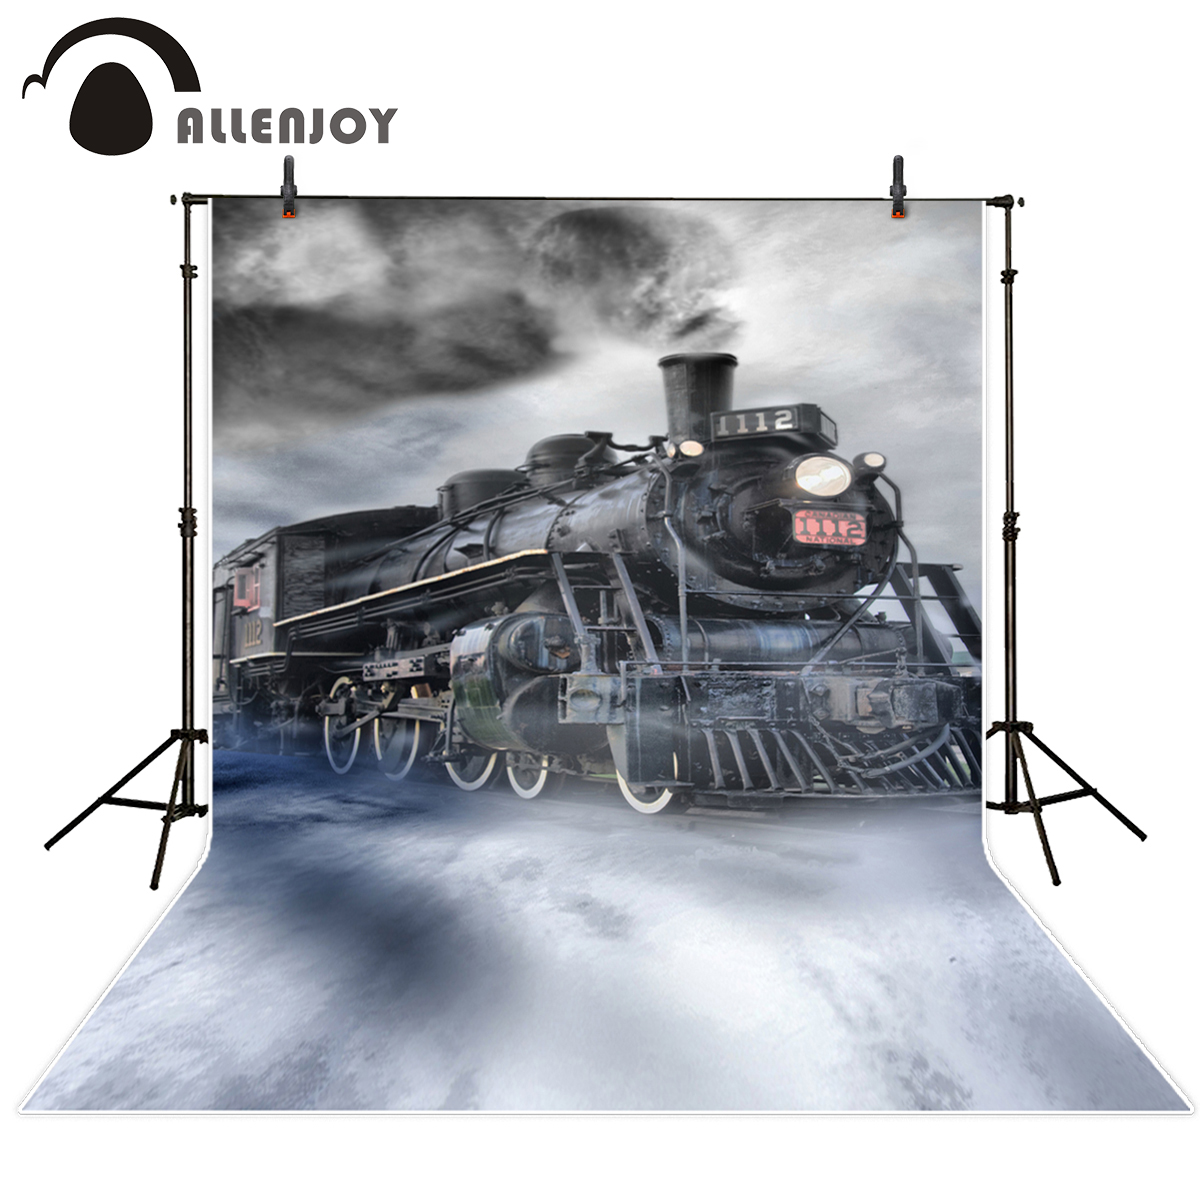 Allenjoy photography background a train with smoke vintage photography studio backgrounds background for photographic studio